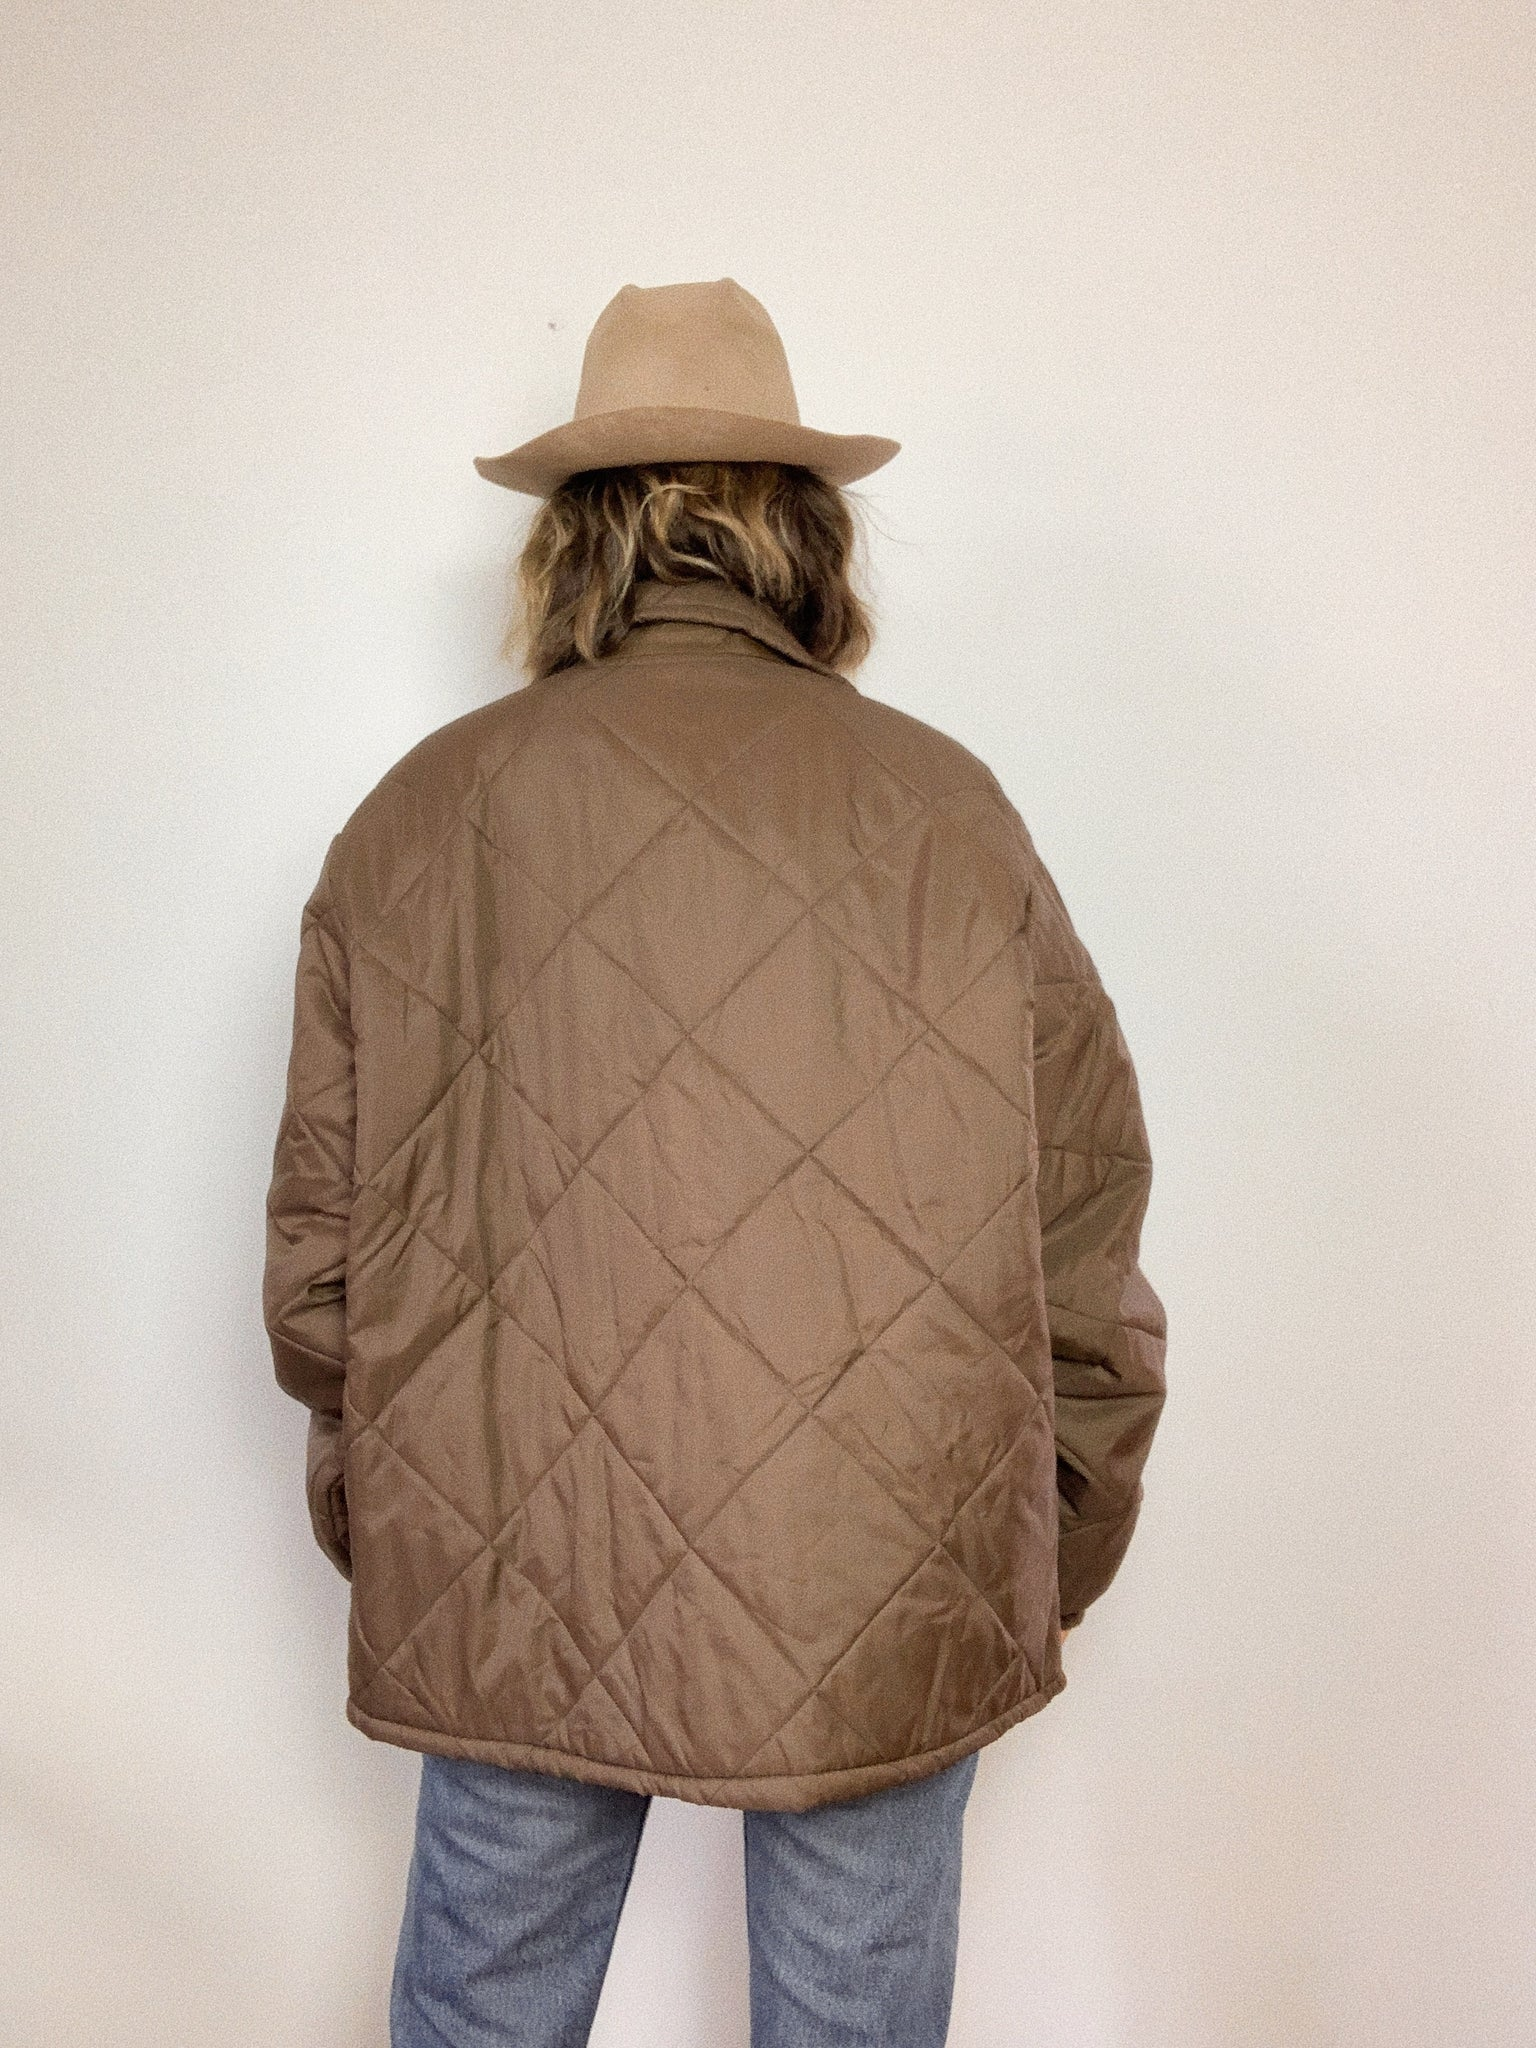 BIG SMITH NYLON QUILTED JACKET / LARGE